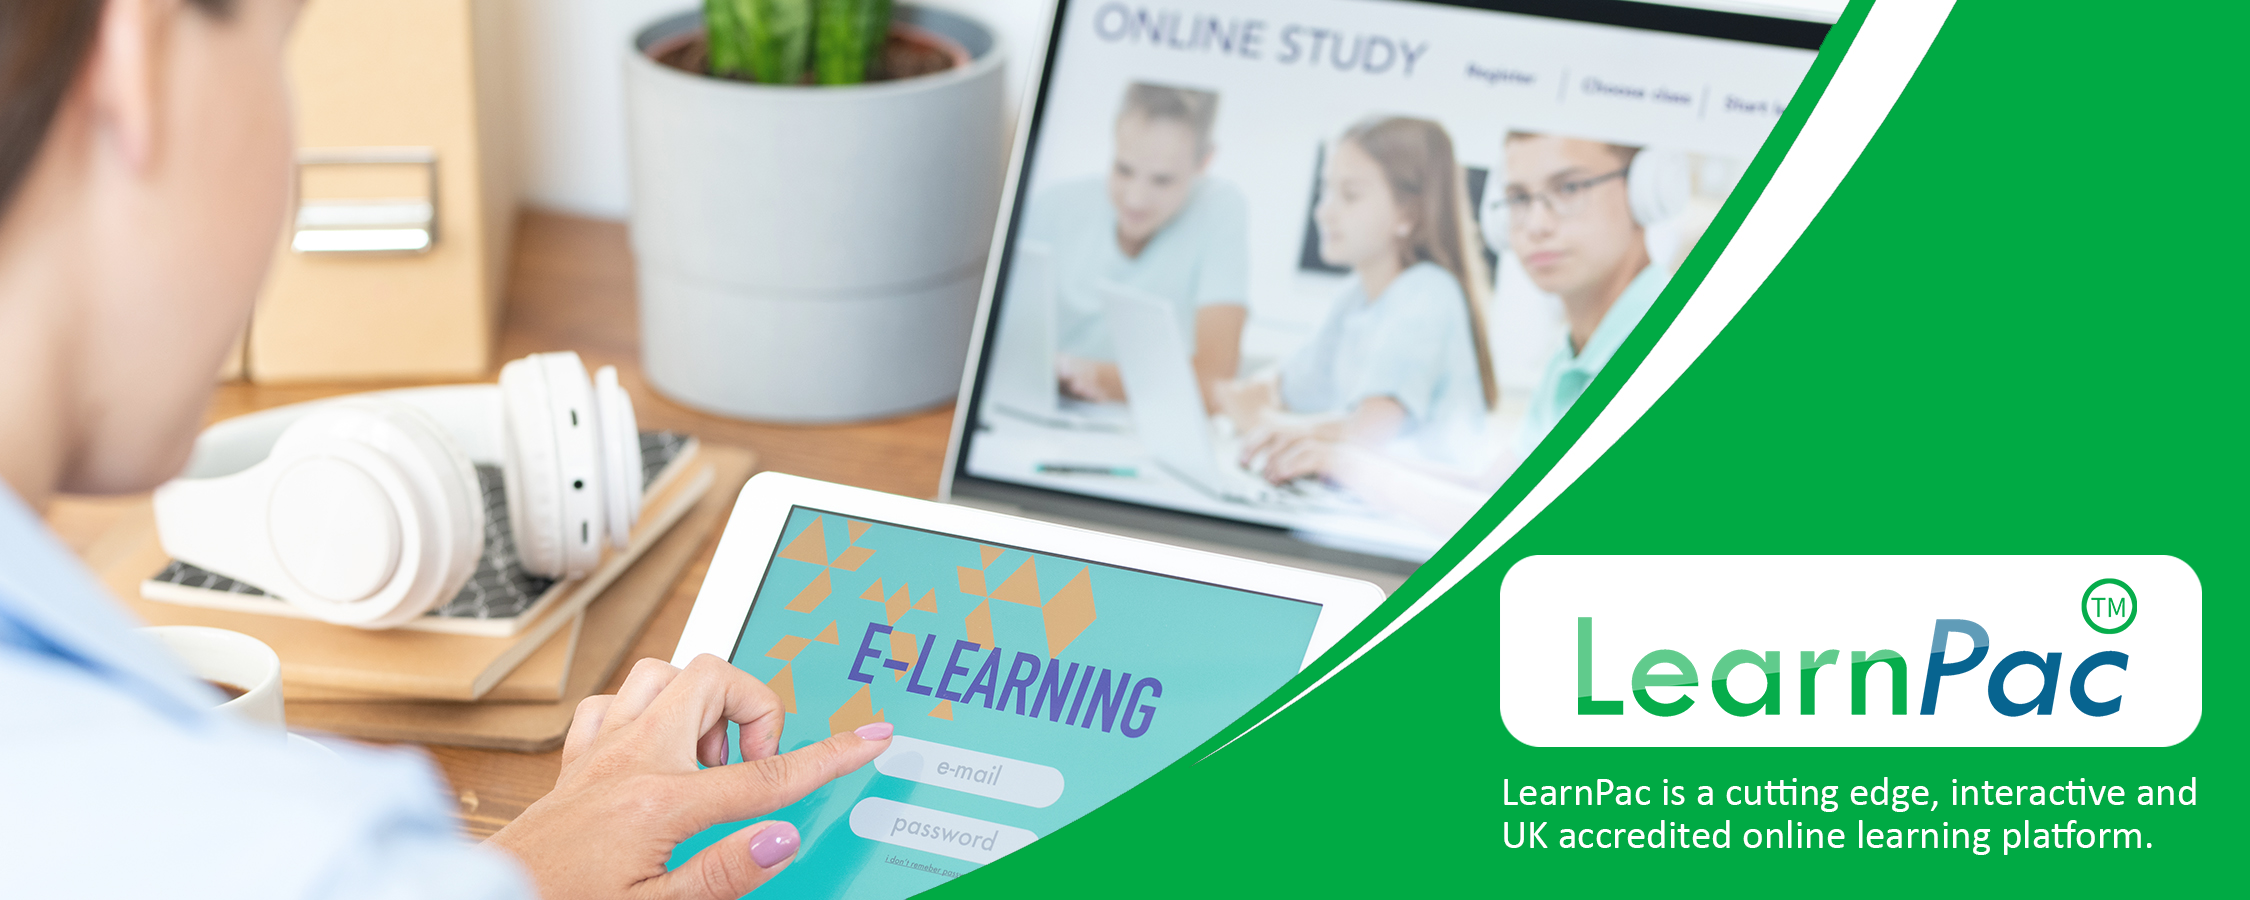 Conducting Annual Employee Reviews - Online Learning Courses - E-Learning Courses - LearnPac Systems UK -